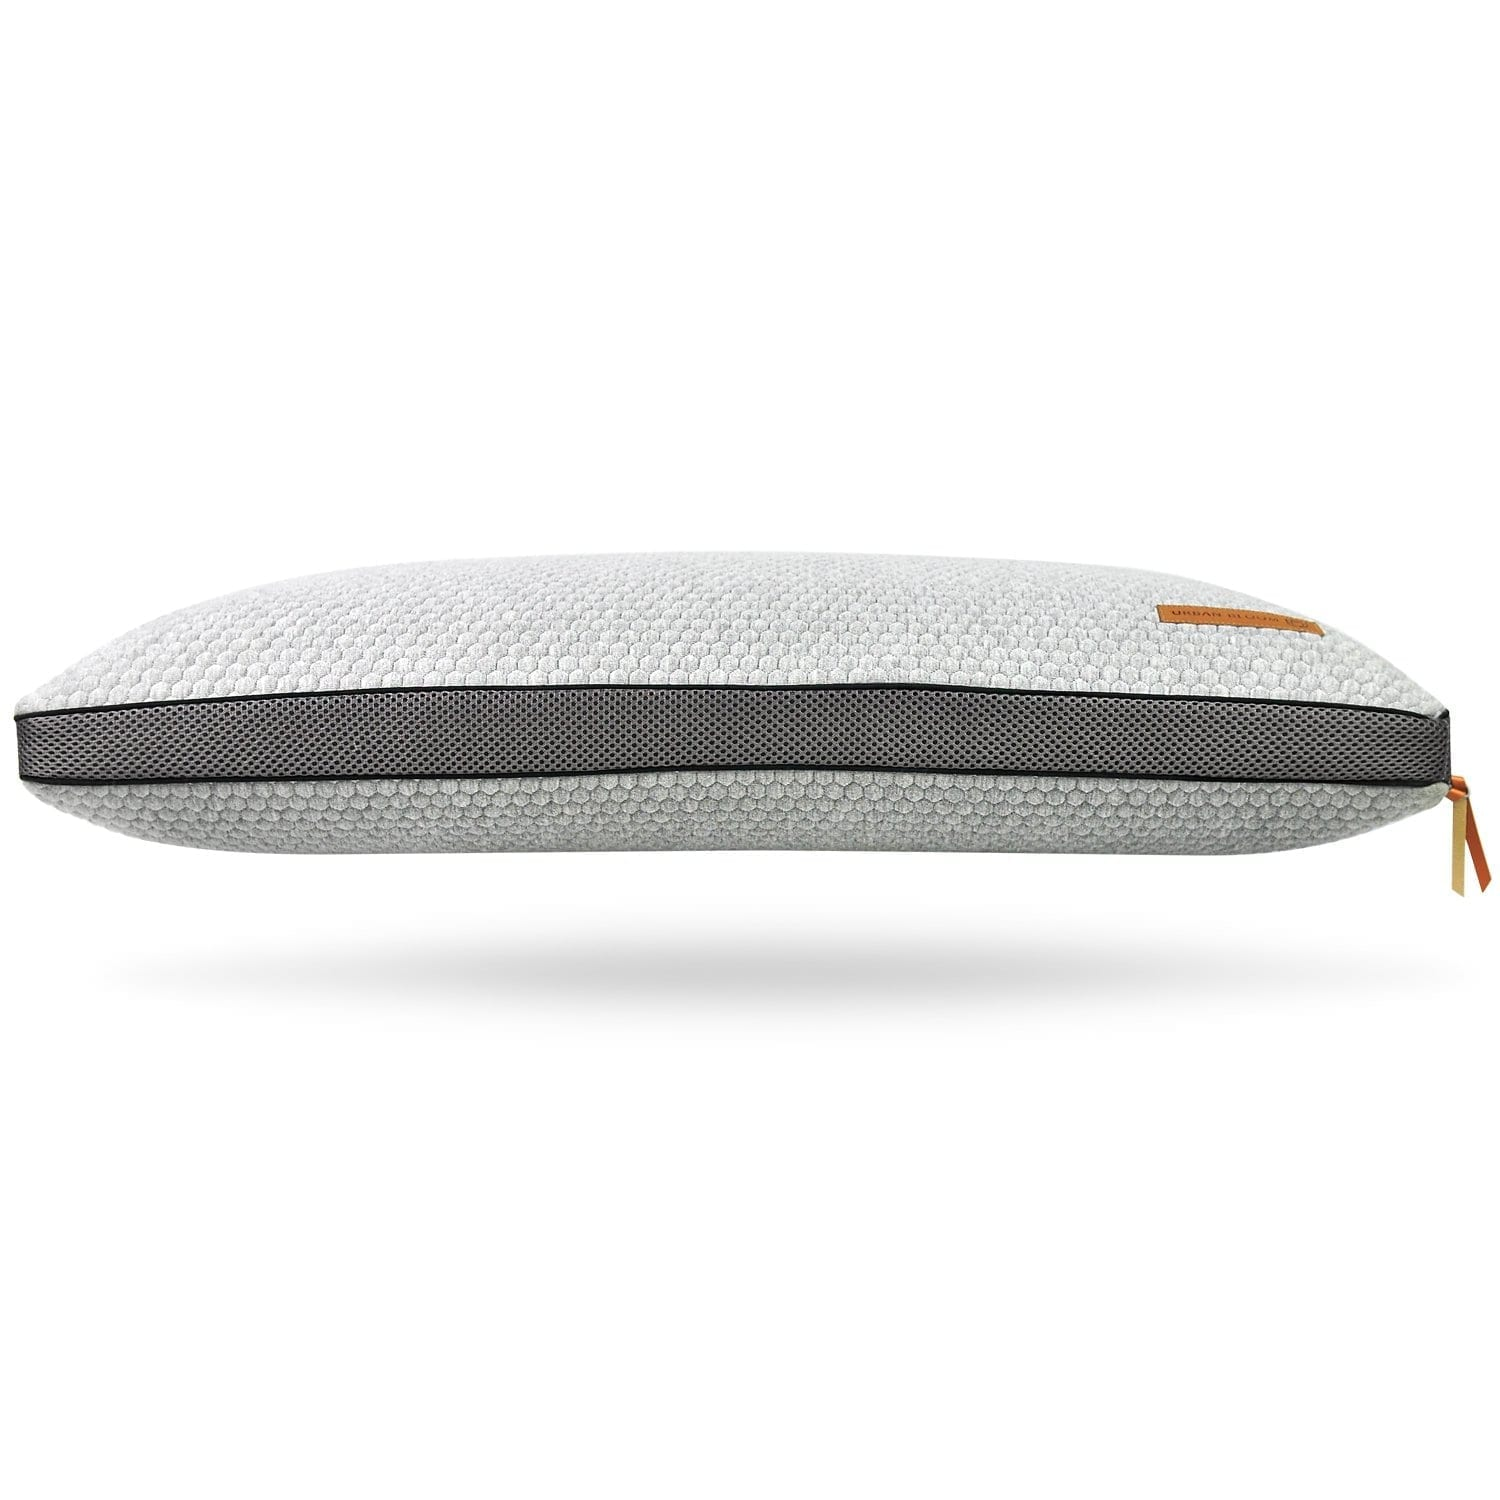 Urban Bloom Domus The Best Memory Foam Pillow Review by www.dailysleep.org